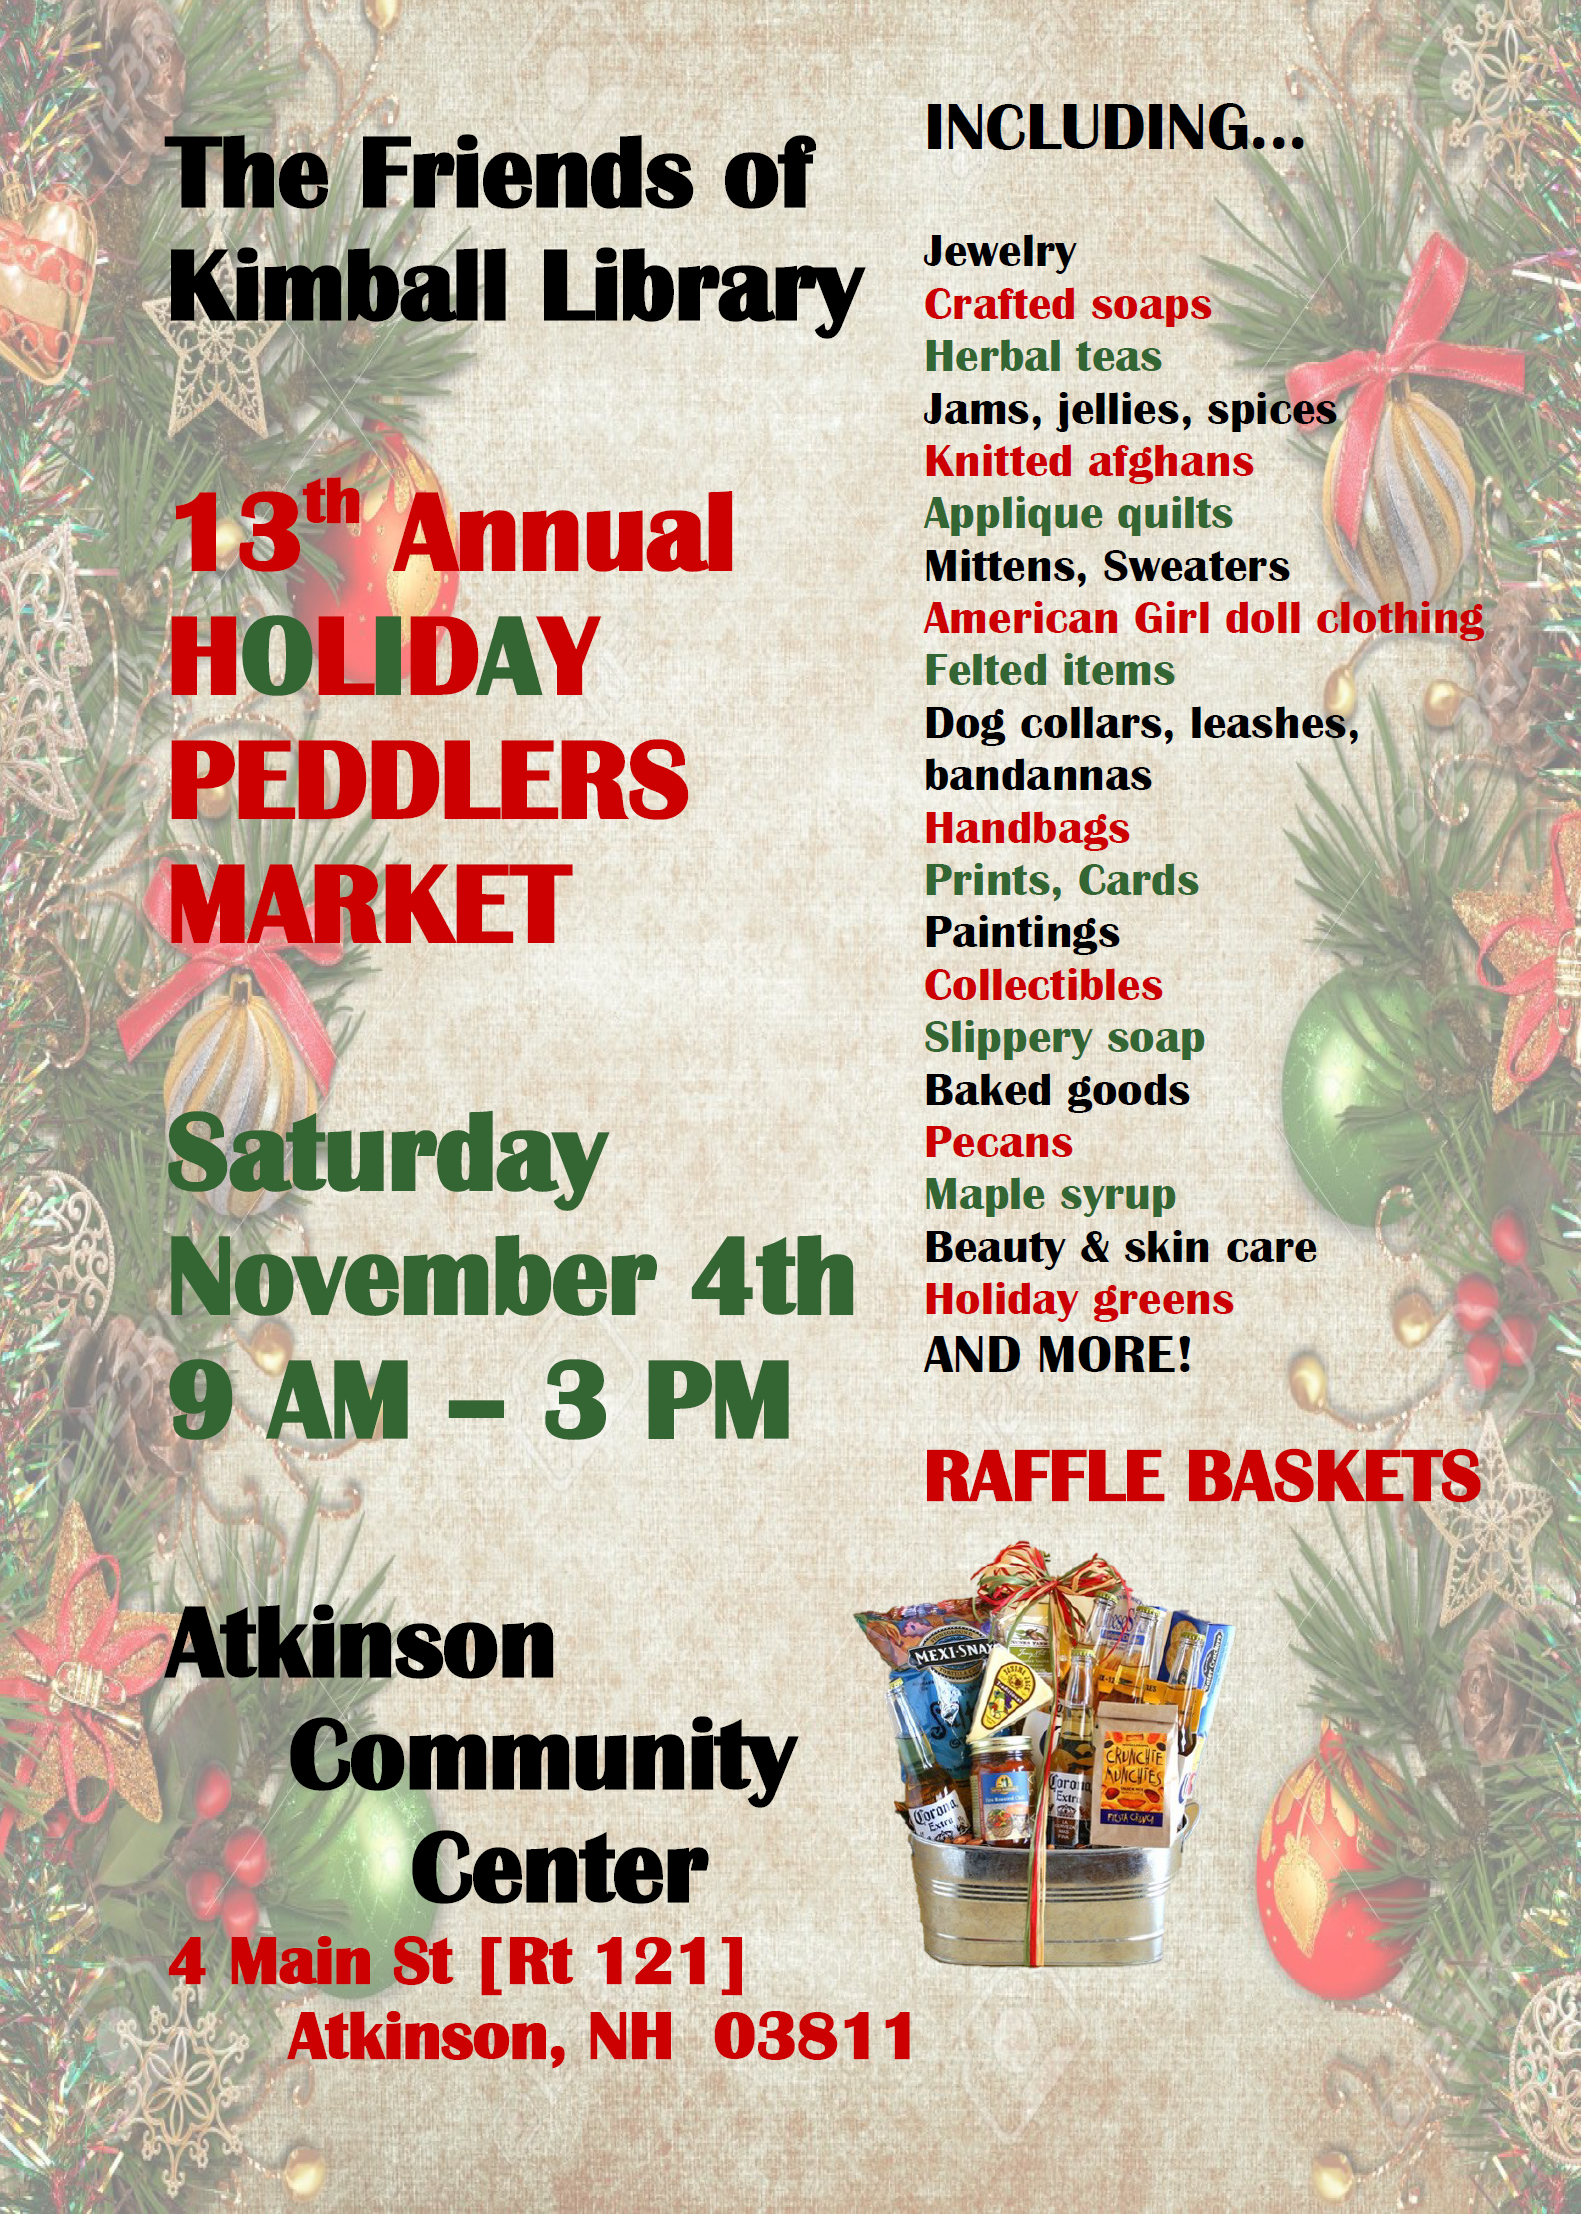 13th Annual Holiday Peddlers Market: November 4, 2017, 9am-3pm @Atkinson Community Center